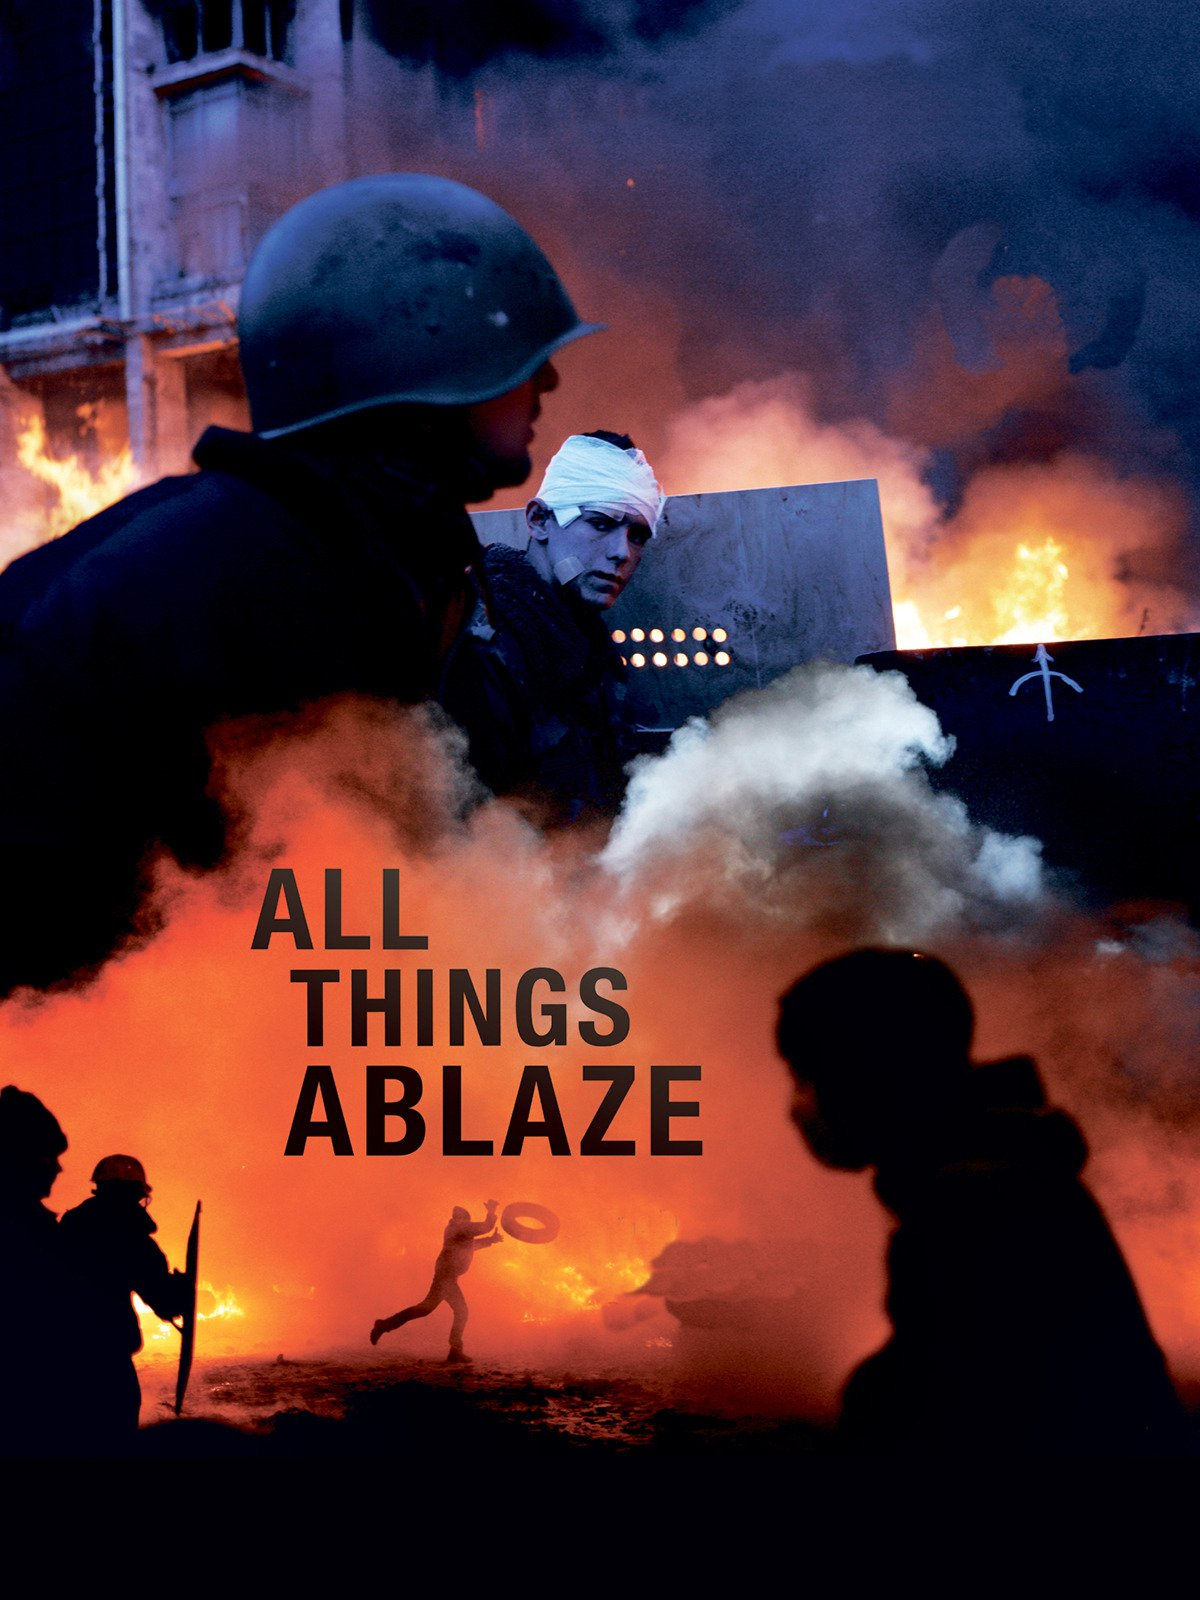 All Things Ablaze